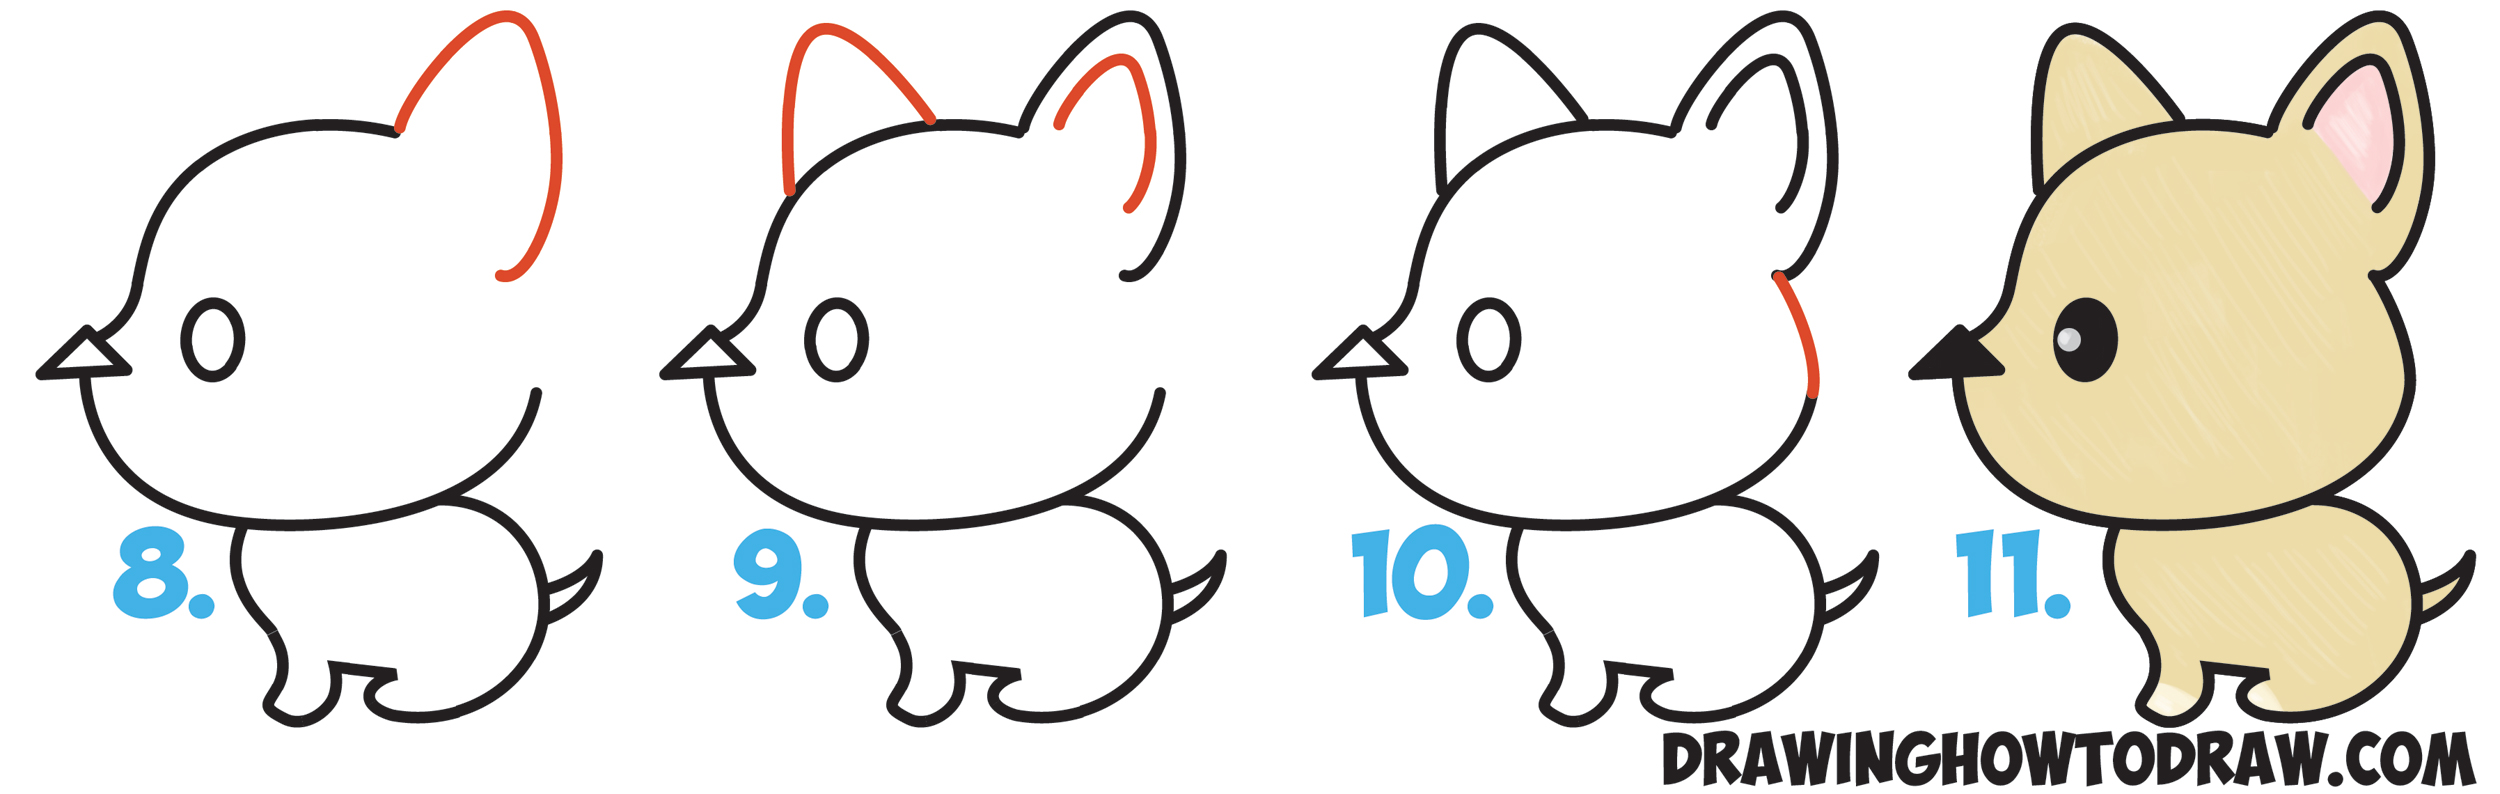 2500x794 Pictures How To Draw A Dog Easy,